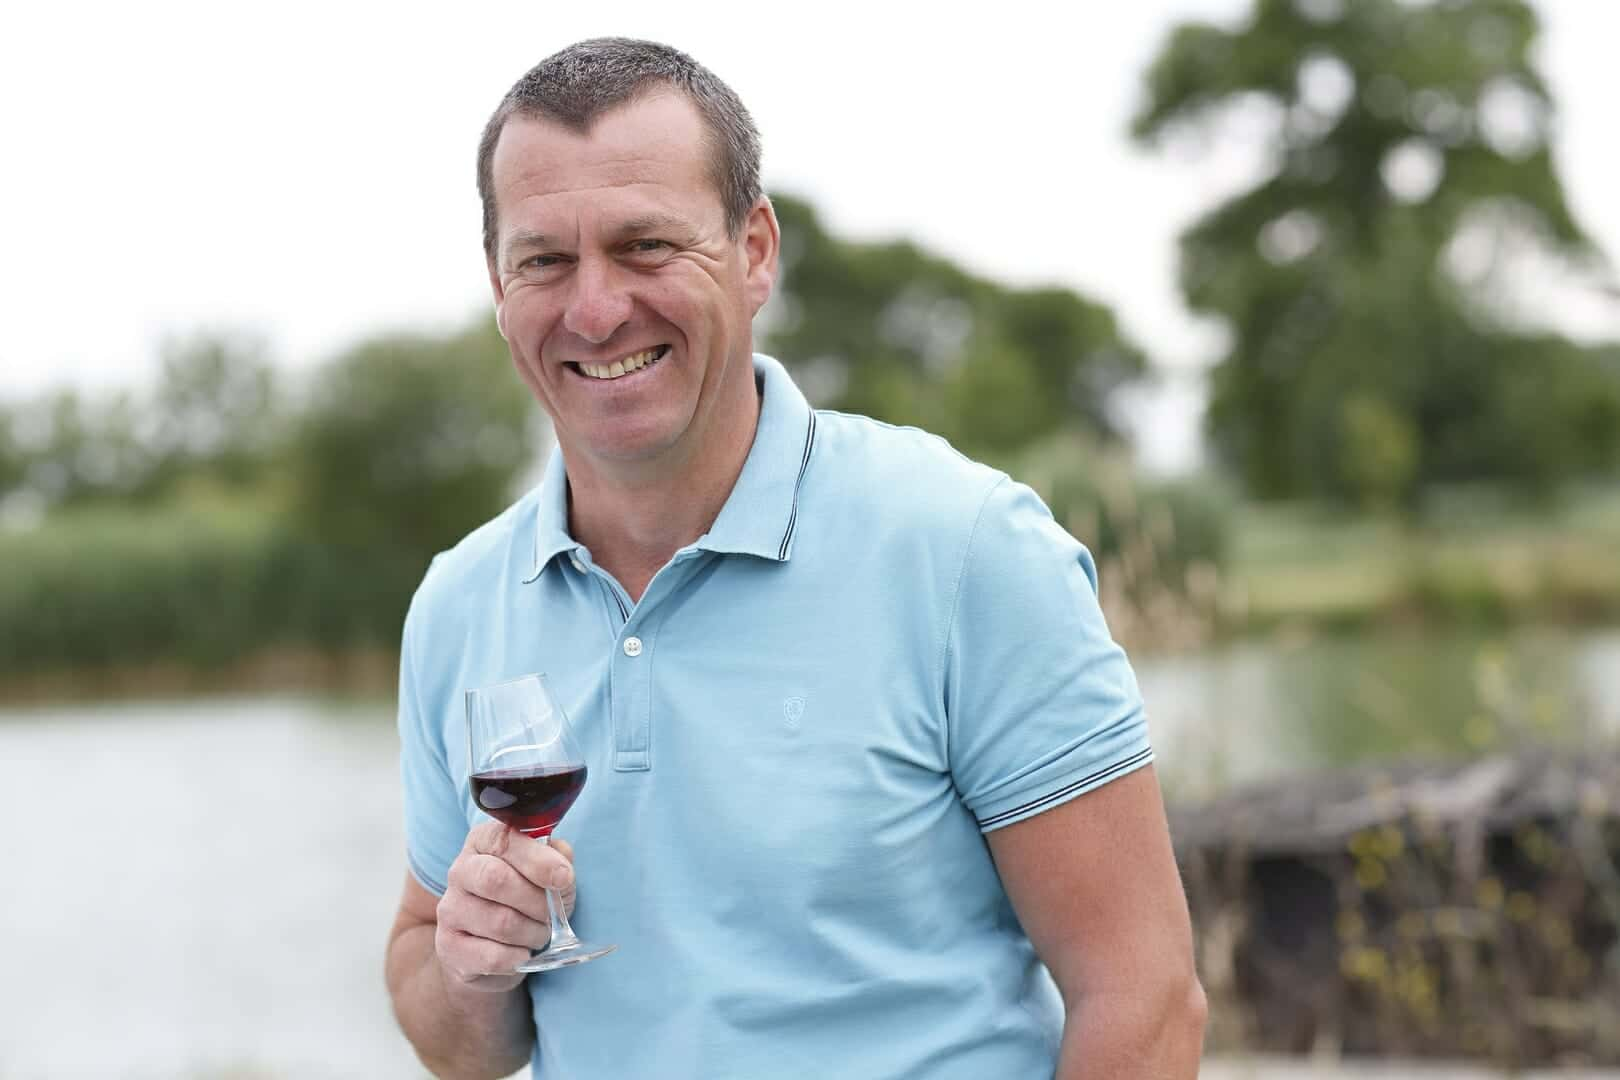 david bertrand - vignoble du frêne - saint nicolas de bourgueil